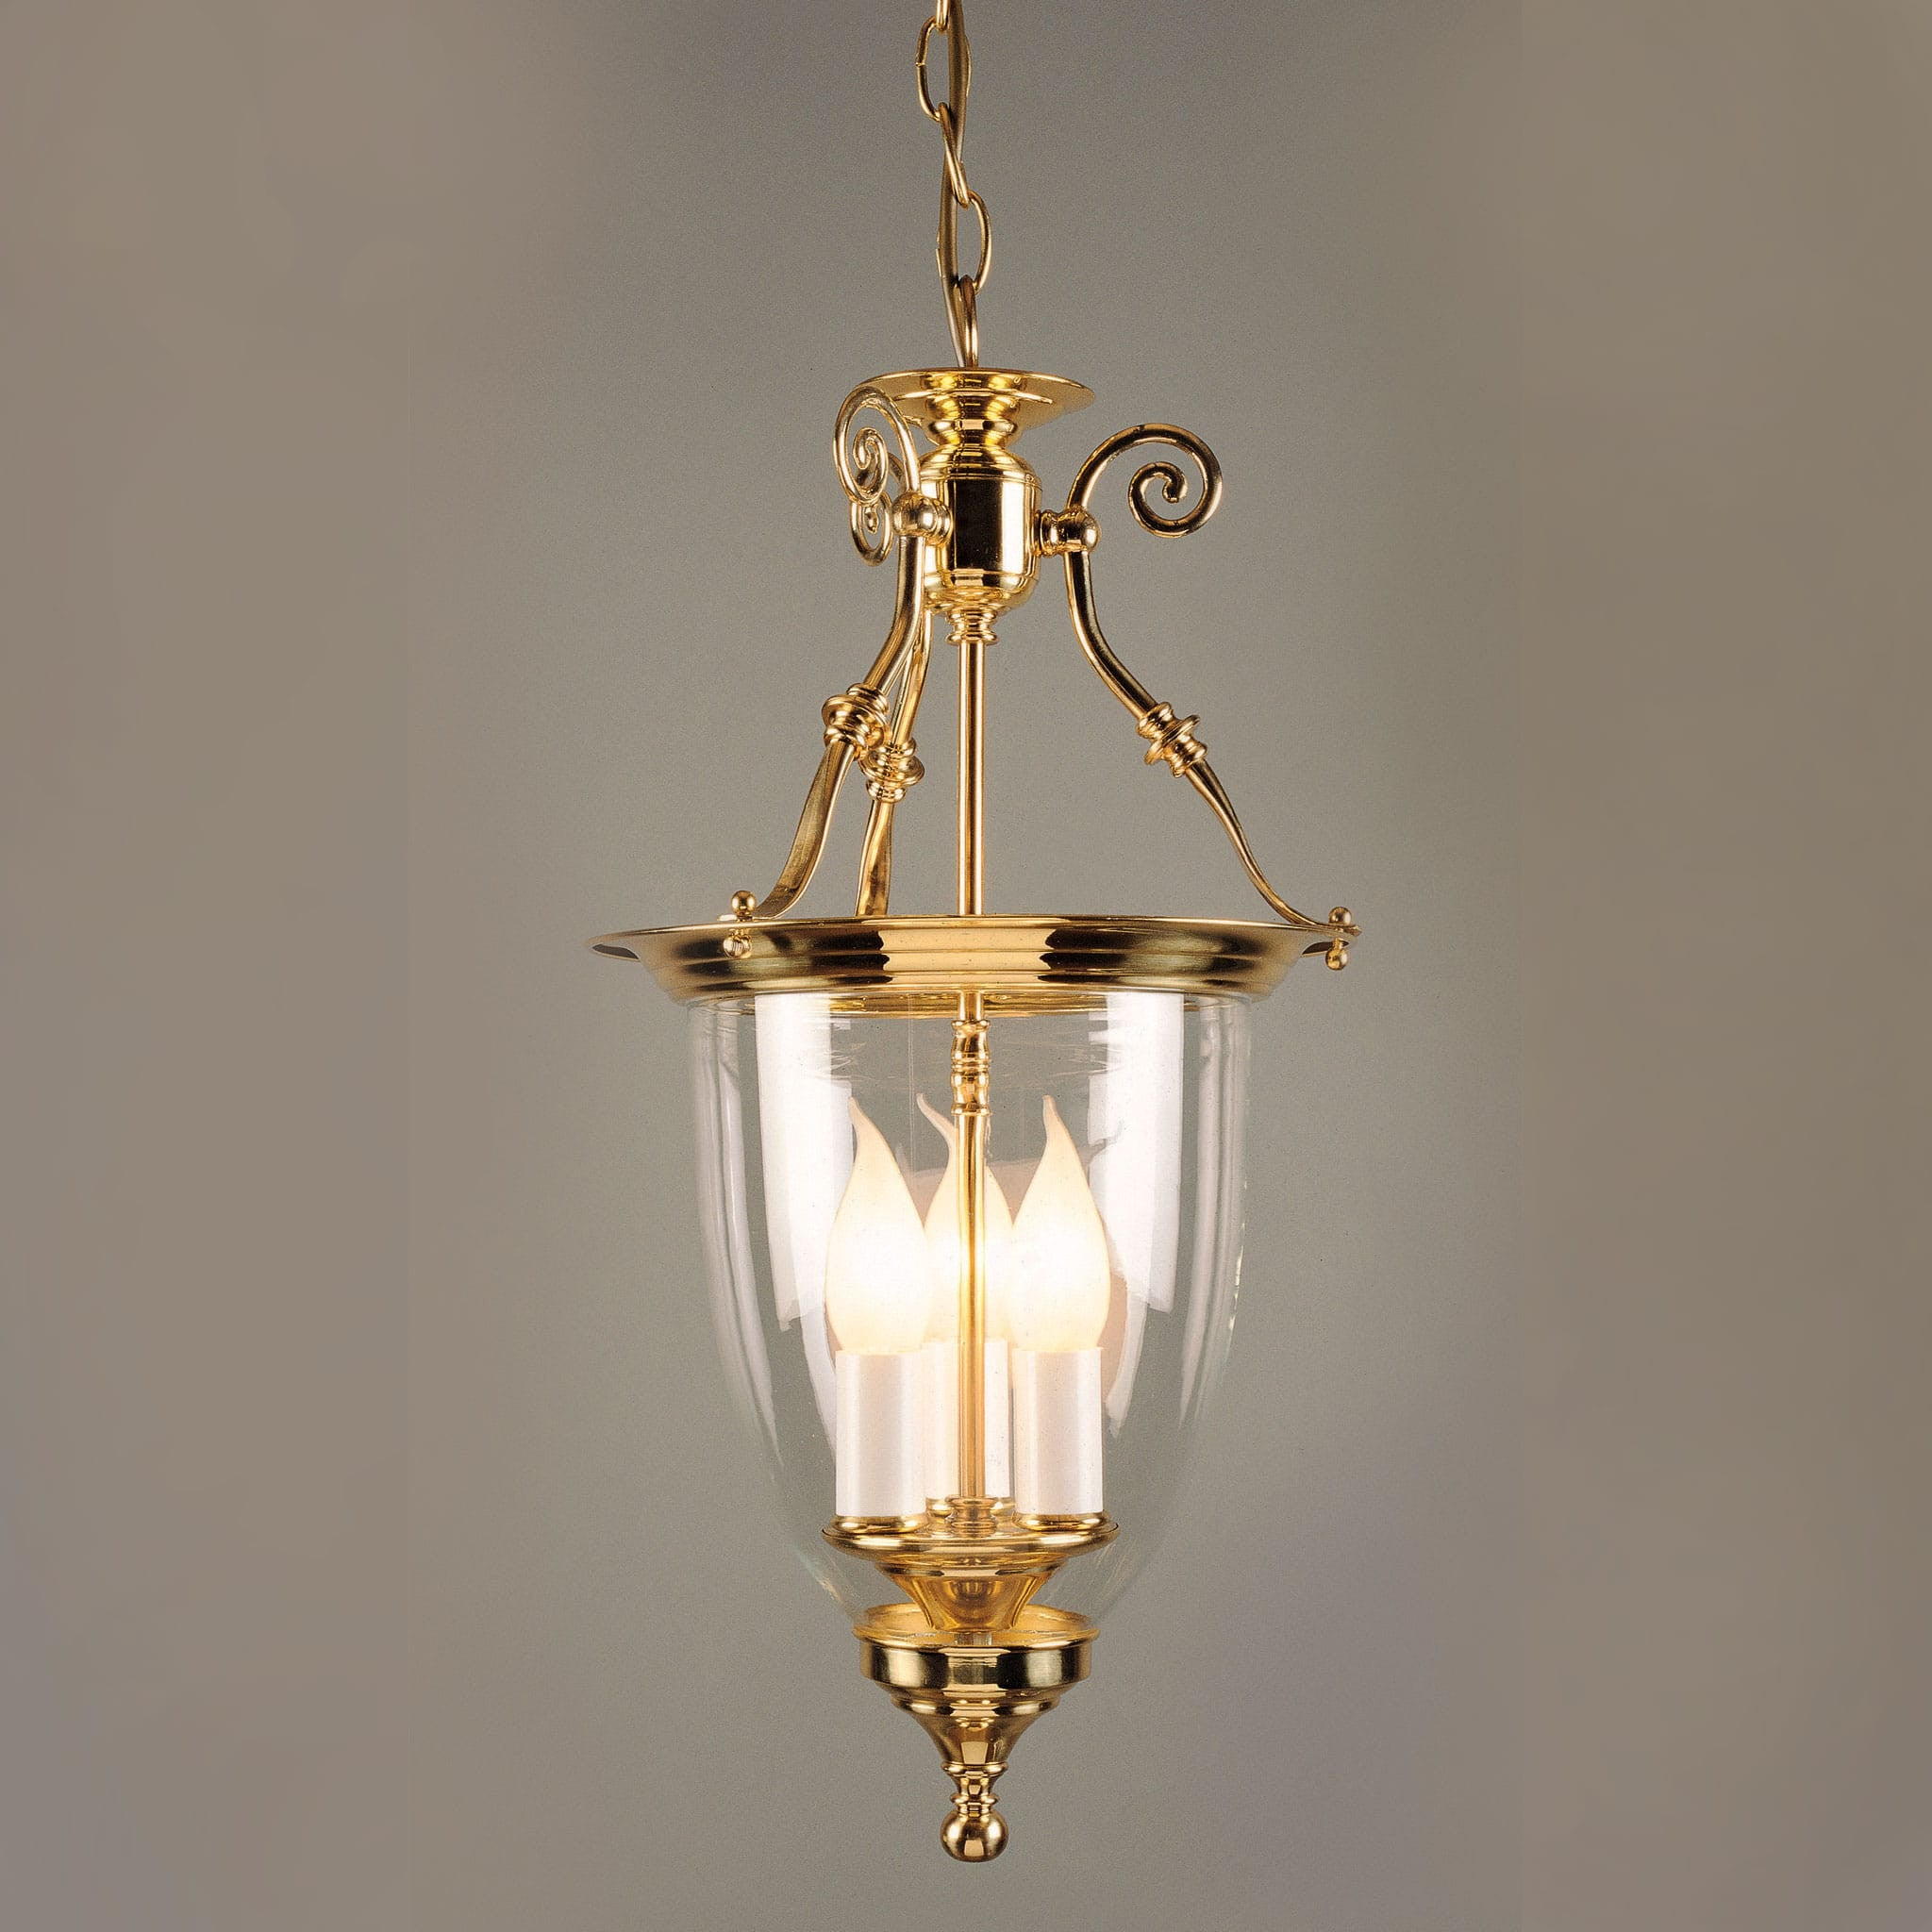 sohne id f pendant for sale lights brass crystal lighting chandeliers glass lamp lantern at bakalowits org from furniture